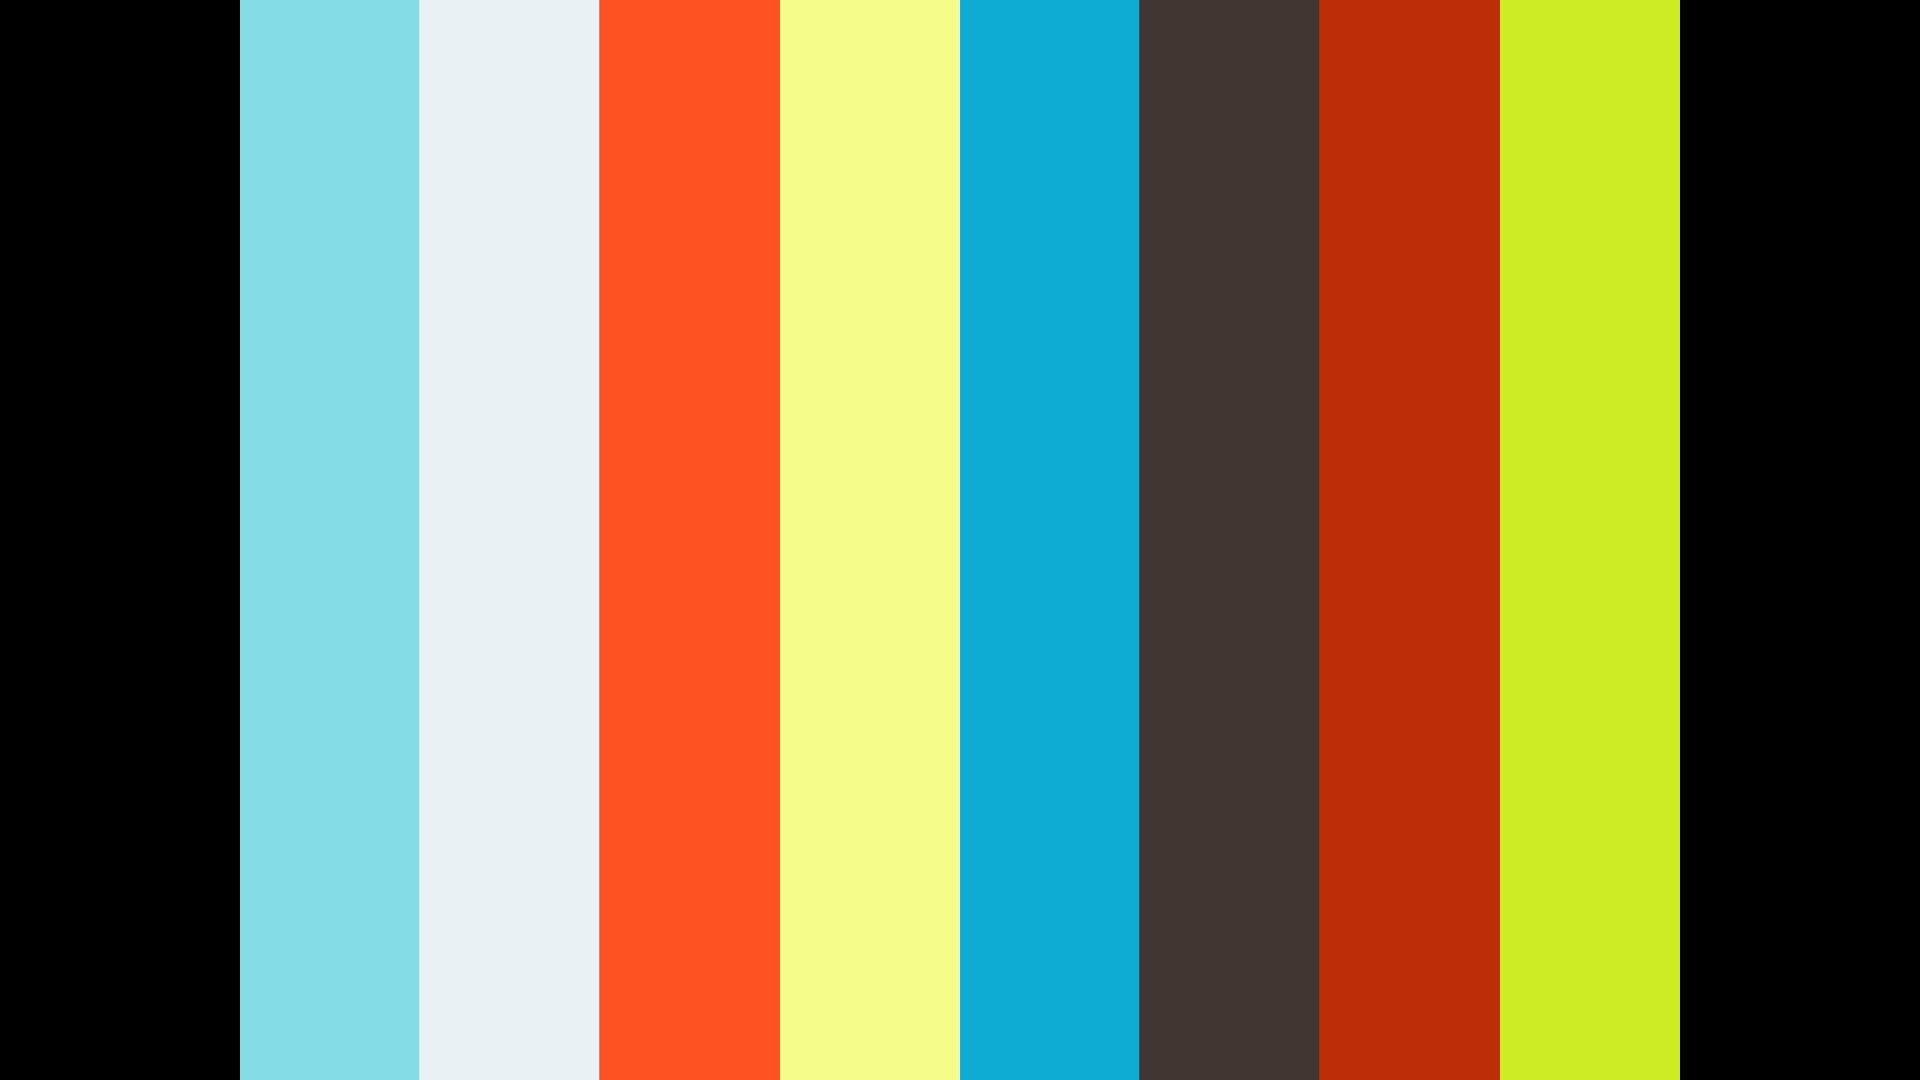 Economic Growth Risks - Election? - October 17, 2016